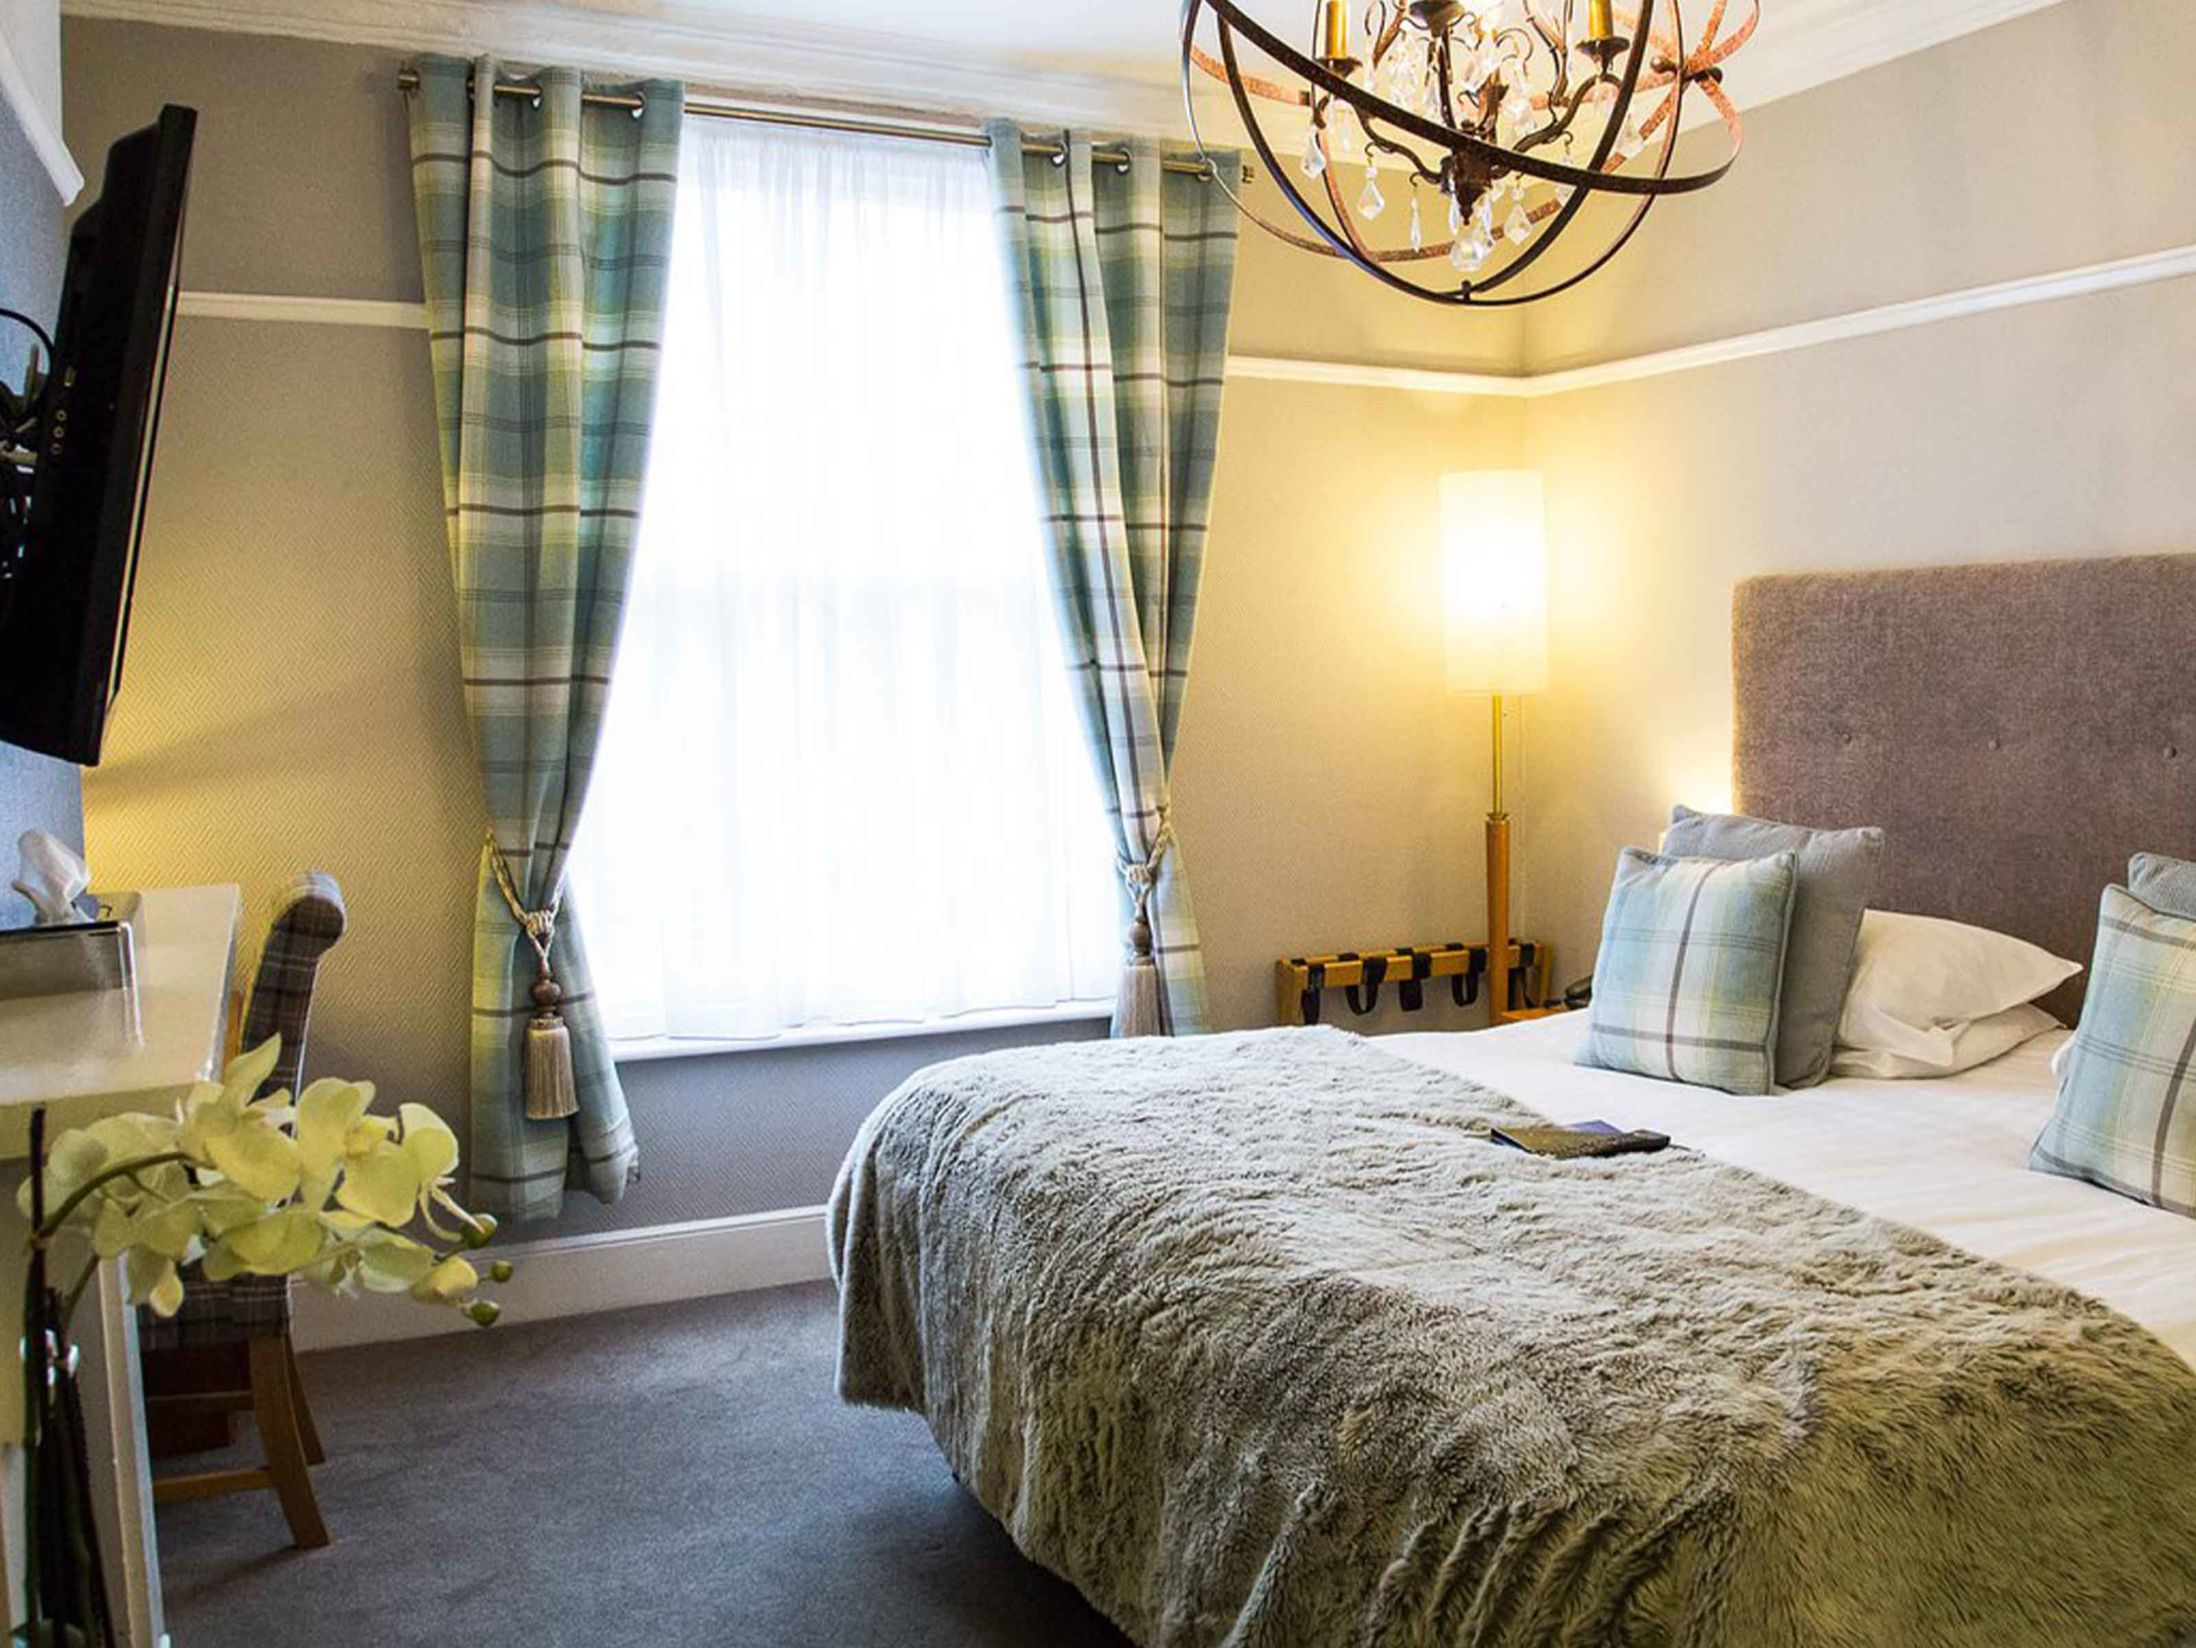 Best Hotels in York - Hedley House